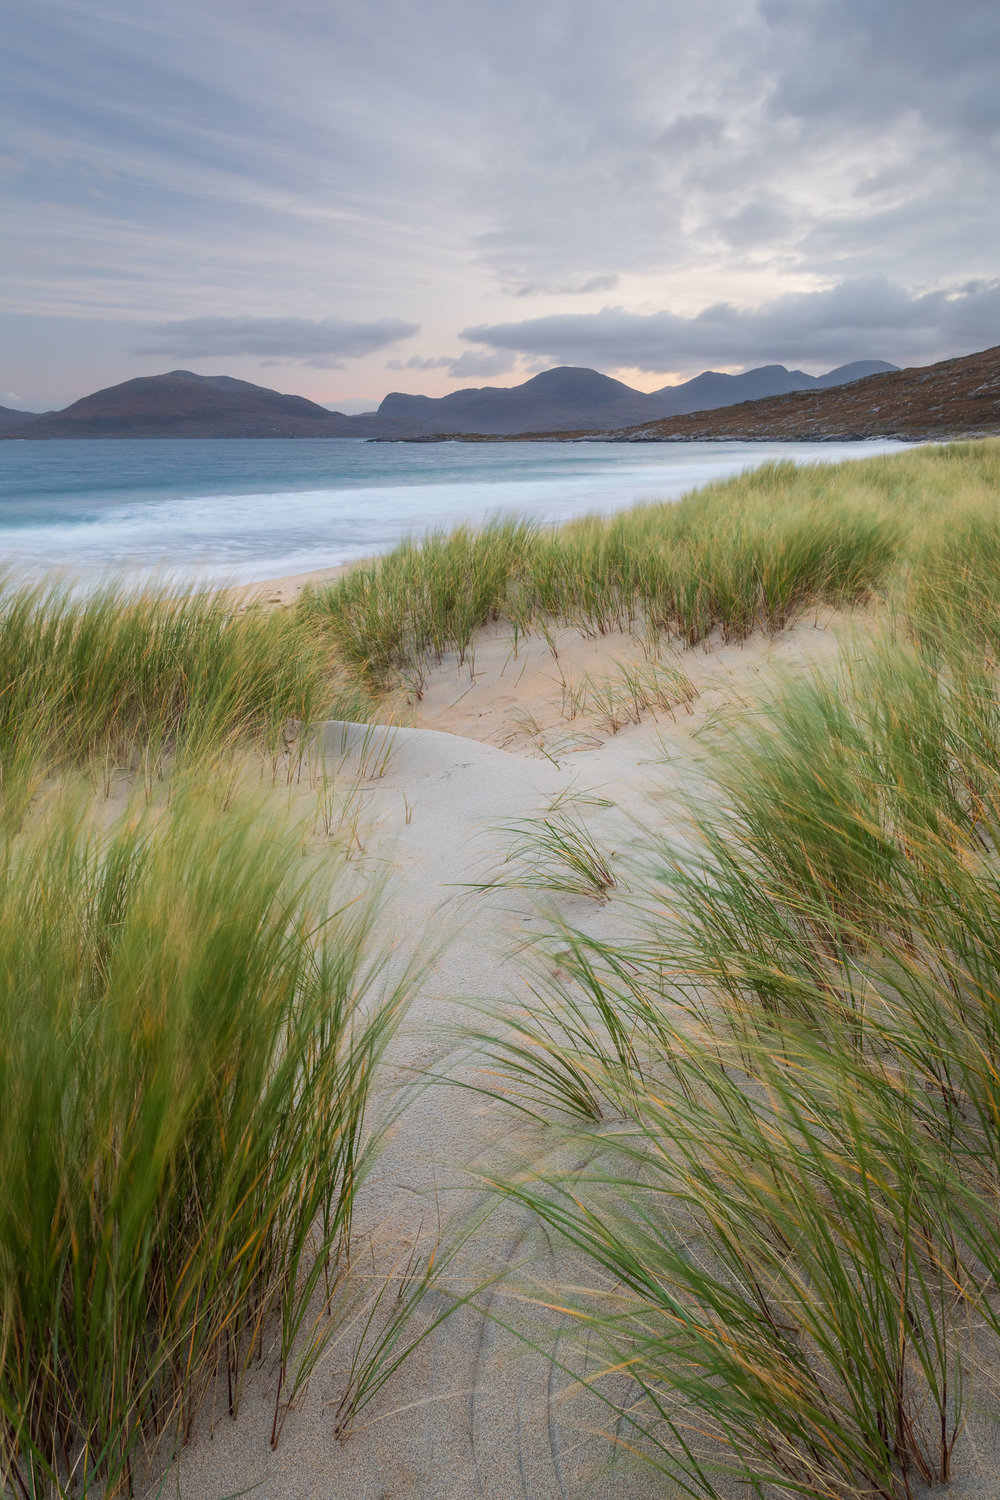 North Harris from Luskentyre Beach, Isle of Harris  - Nikon D850, Nikkor 16-35 mm f/4 at 19 mm, f/13, 3 seconds at ISO 200, Lee Filters Circular Polariser and ND Grad.